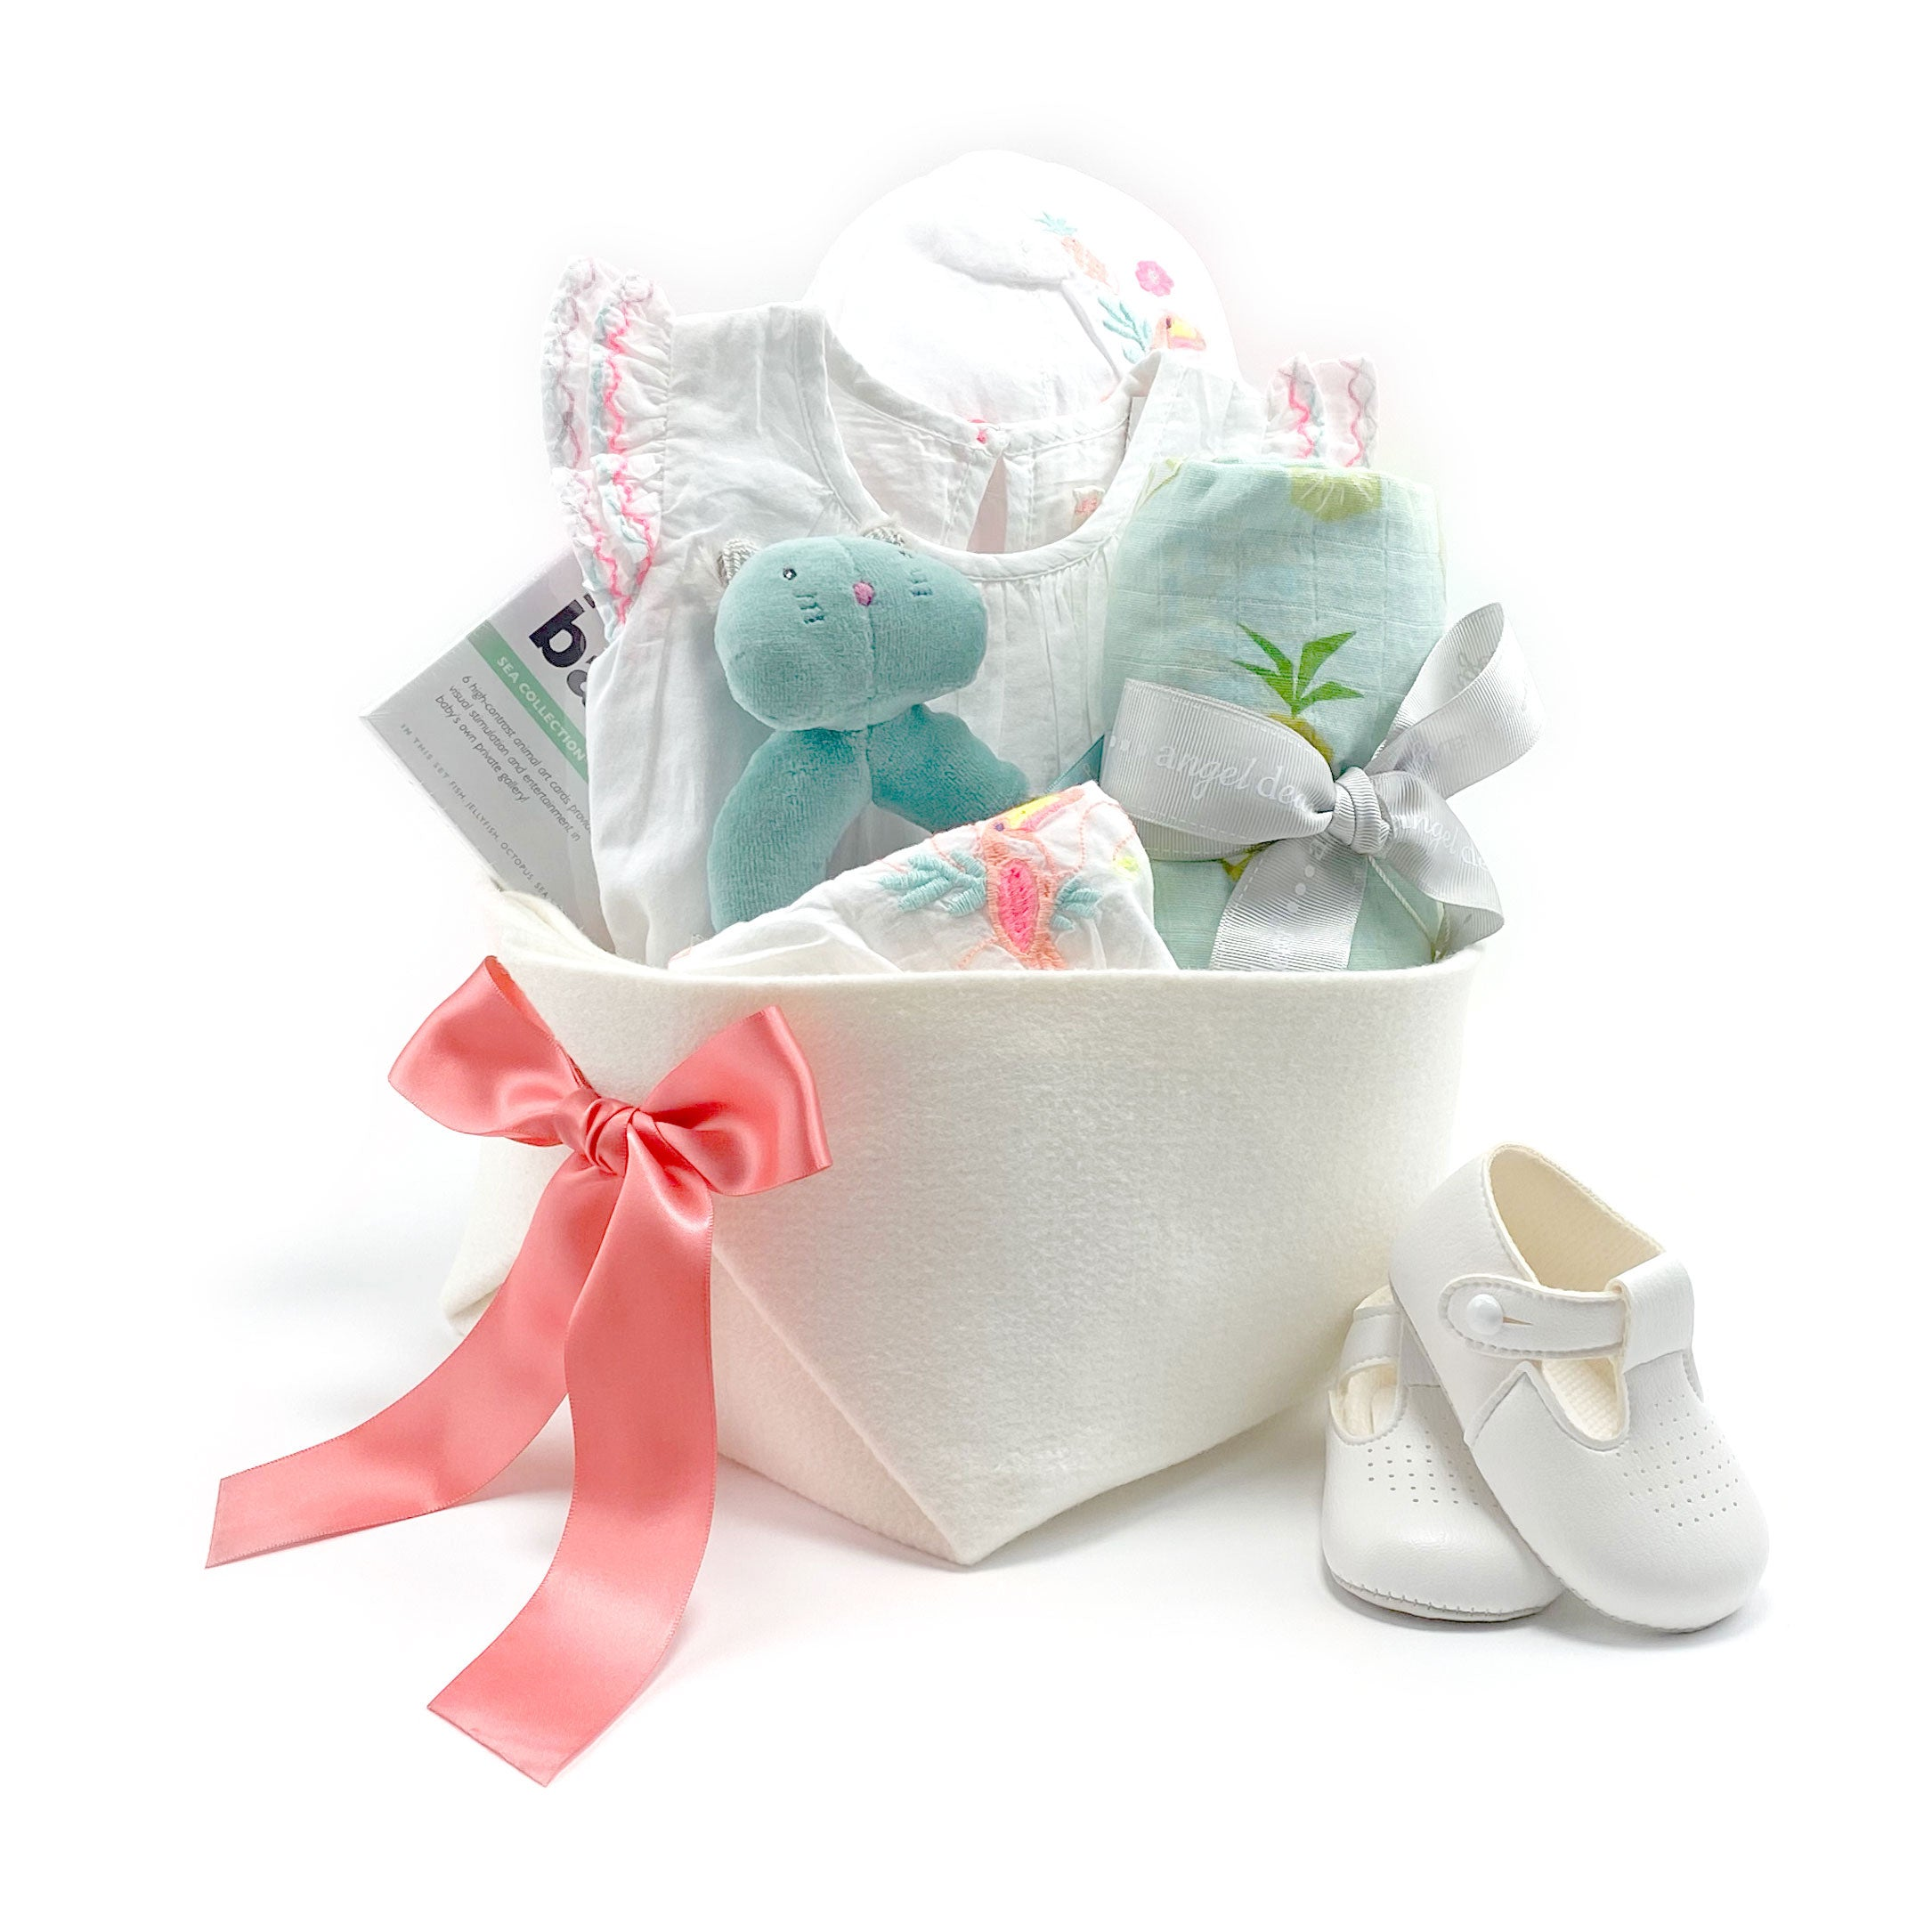 Best Corporate Baby Gift Baskets featuring BillieBlush, perfect Corporate Baby Gift